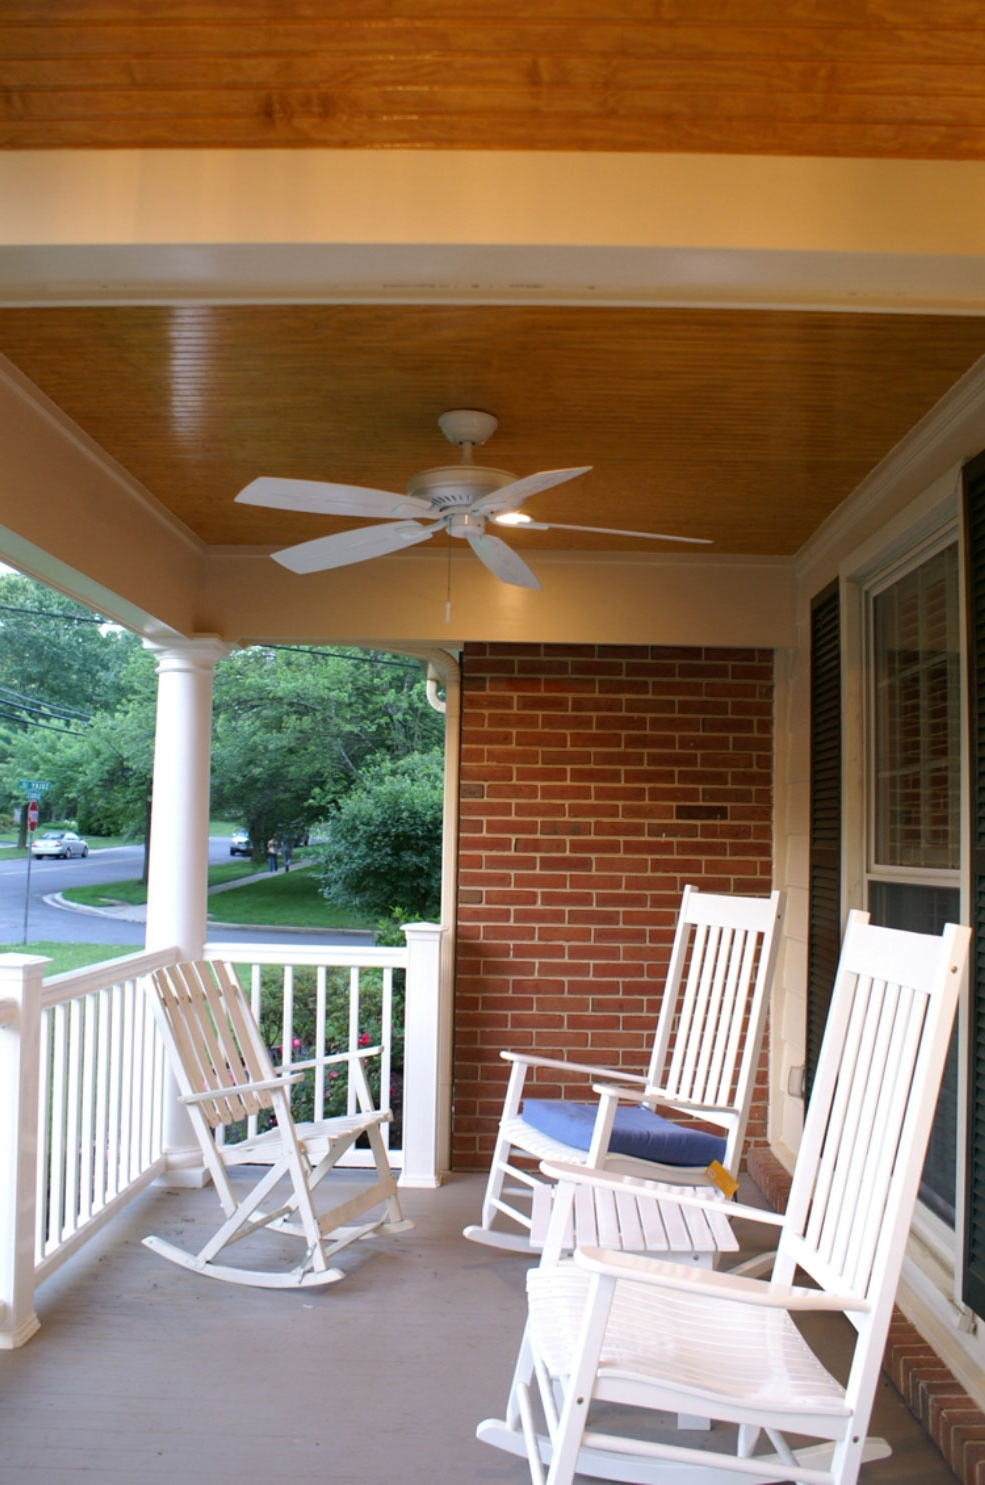 Widely Used Ceiling: Glamorous Outdoor Ceiling Fans Without Lights Lowes Ceiling With Regard To Outdoor Ceiling Fans For Porch (View 18 of 20)